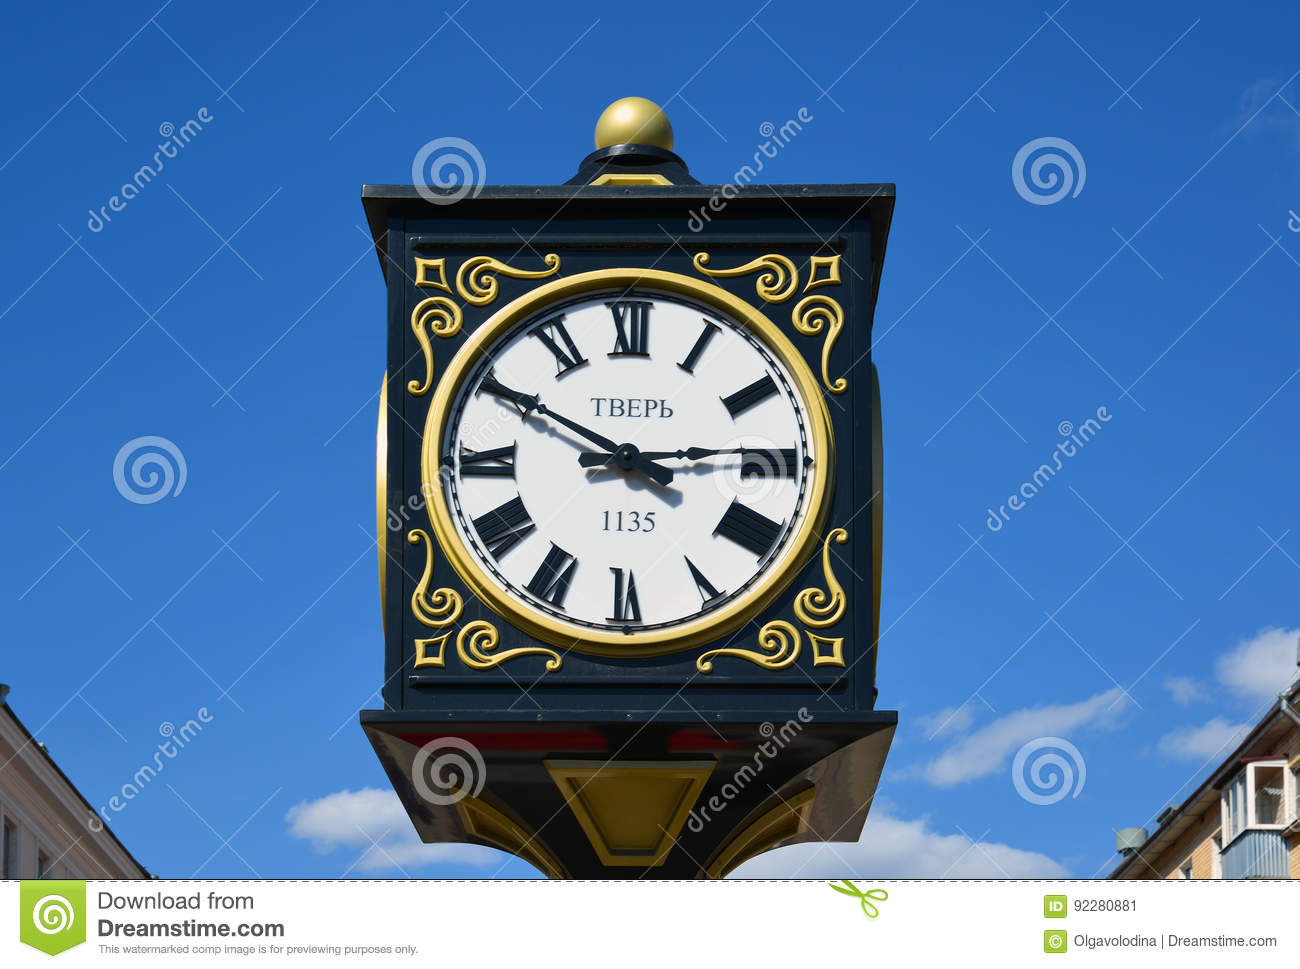 Download Clock On Trehsvyatskaya Street With The Indication Of The Year Of Foundation Of City Of Tver, Russia Stock Image - Image of tver, indication: 92280881